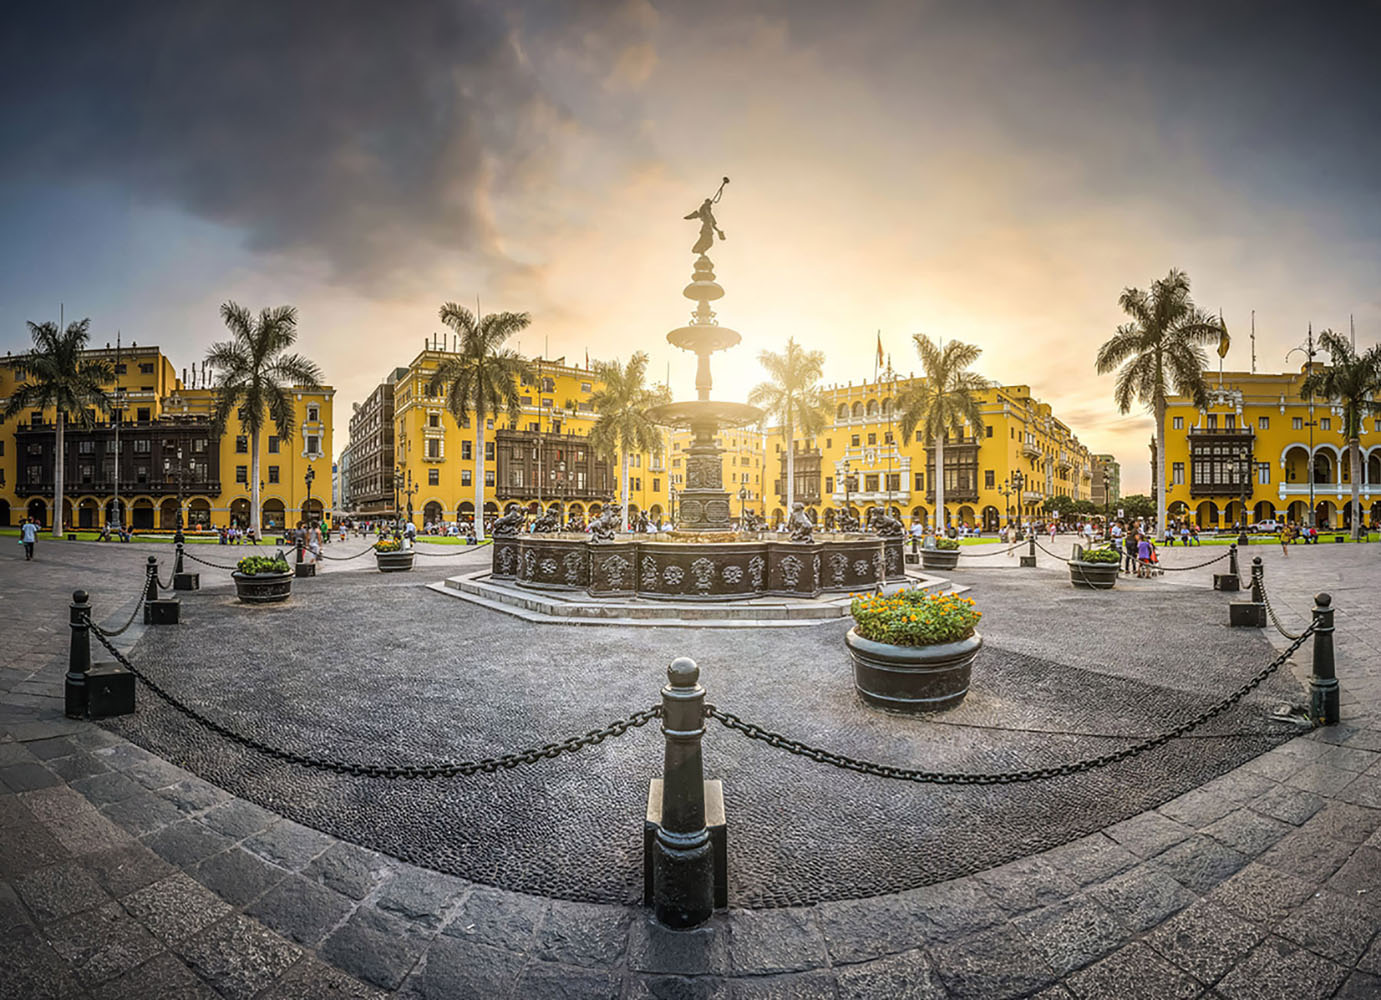 Antique iron pool of the main square of Lima, Peru.